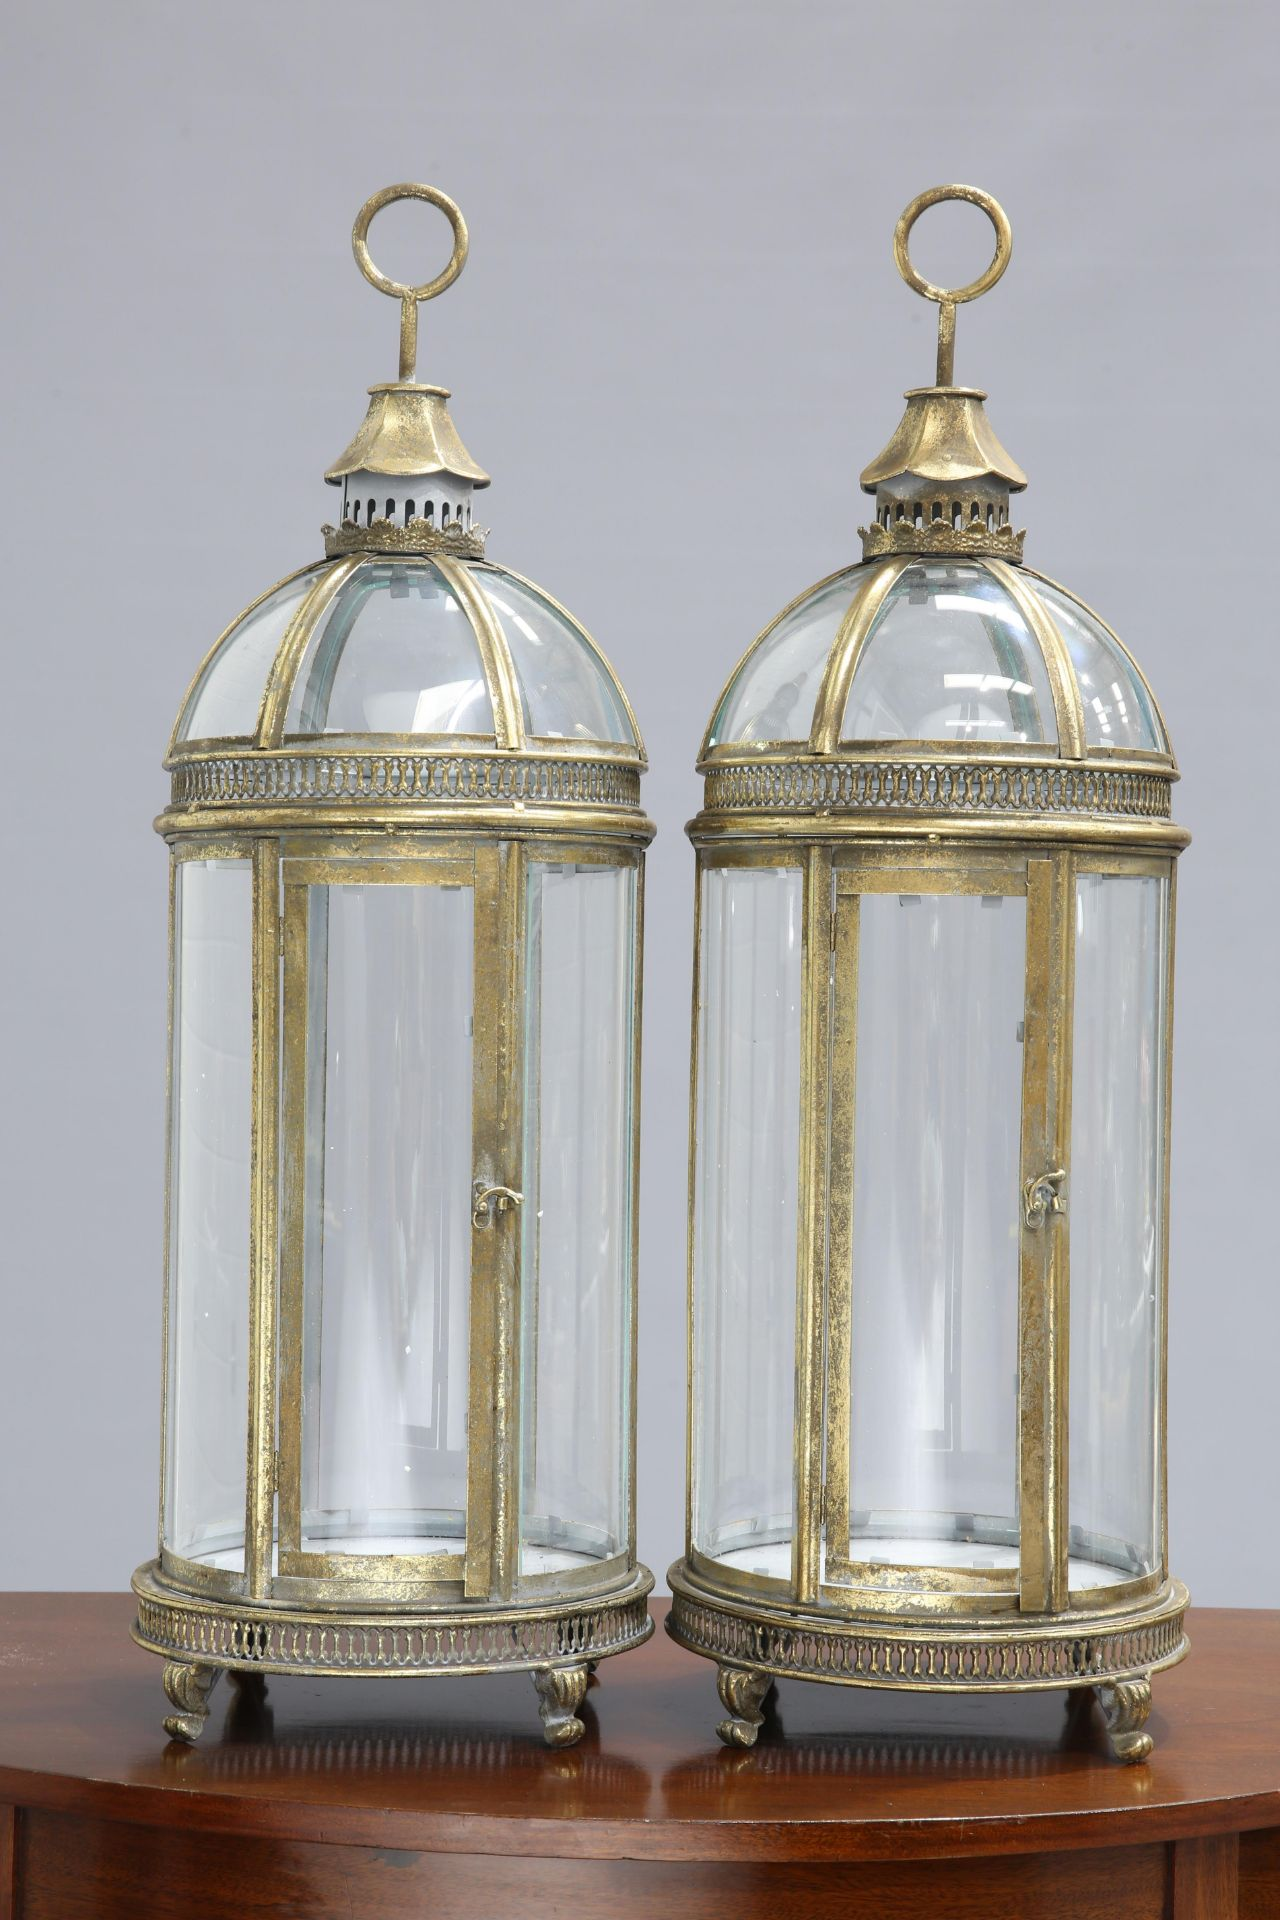 A PAIR OF PERIOD STYLE GILT METAL HANGING LANTERNS, each with domed top and hinged door. 78cm high